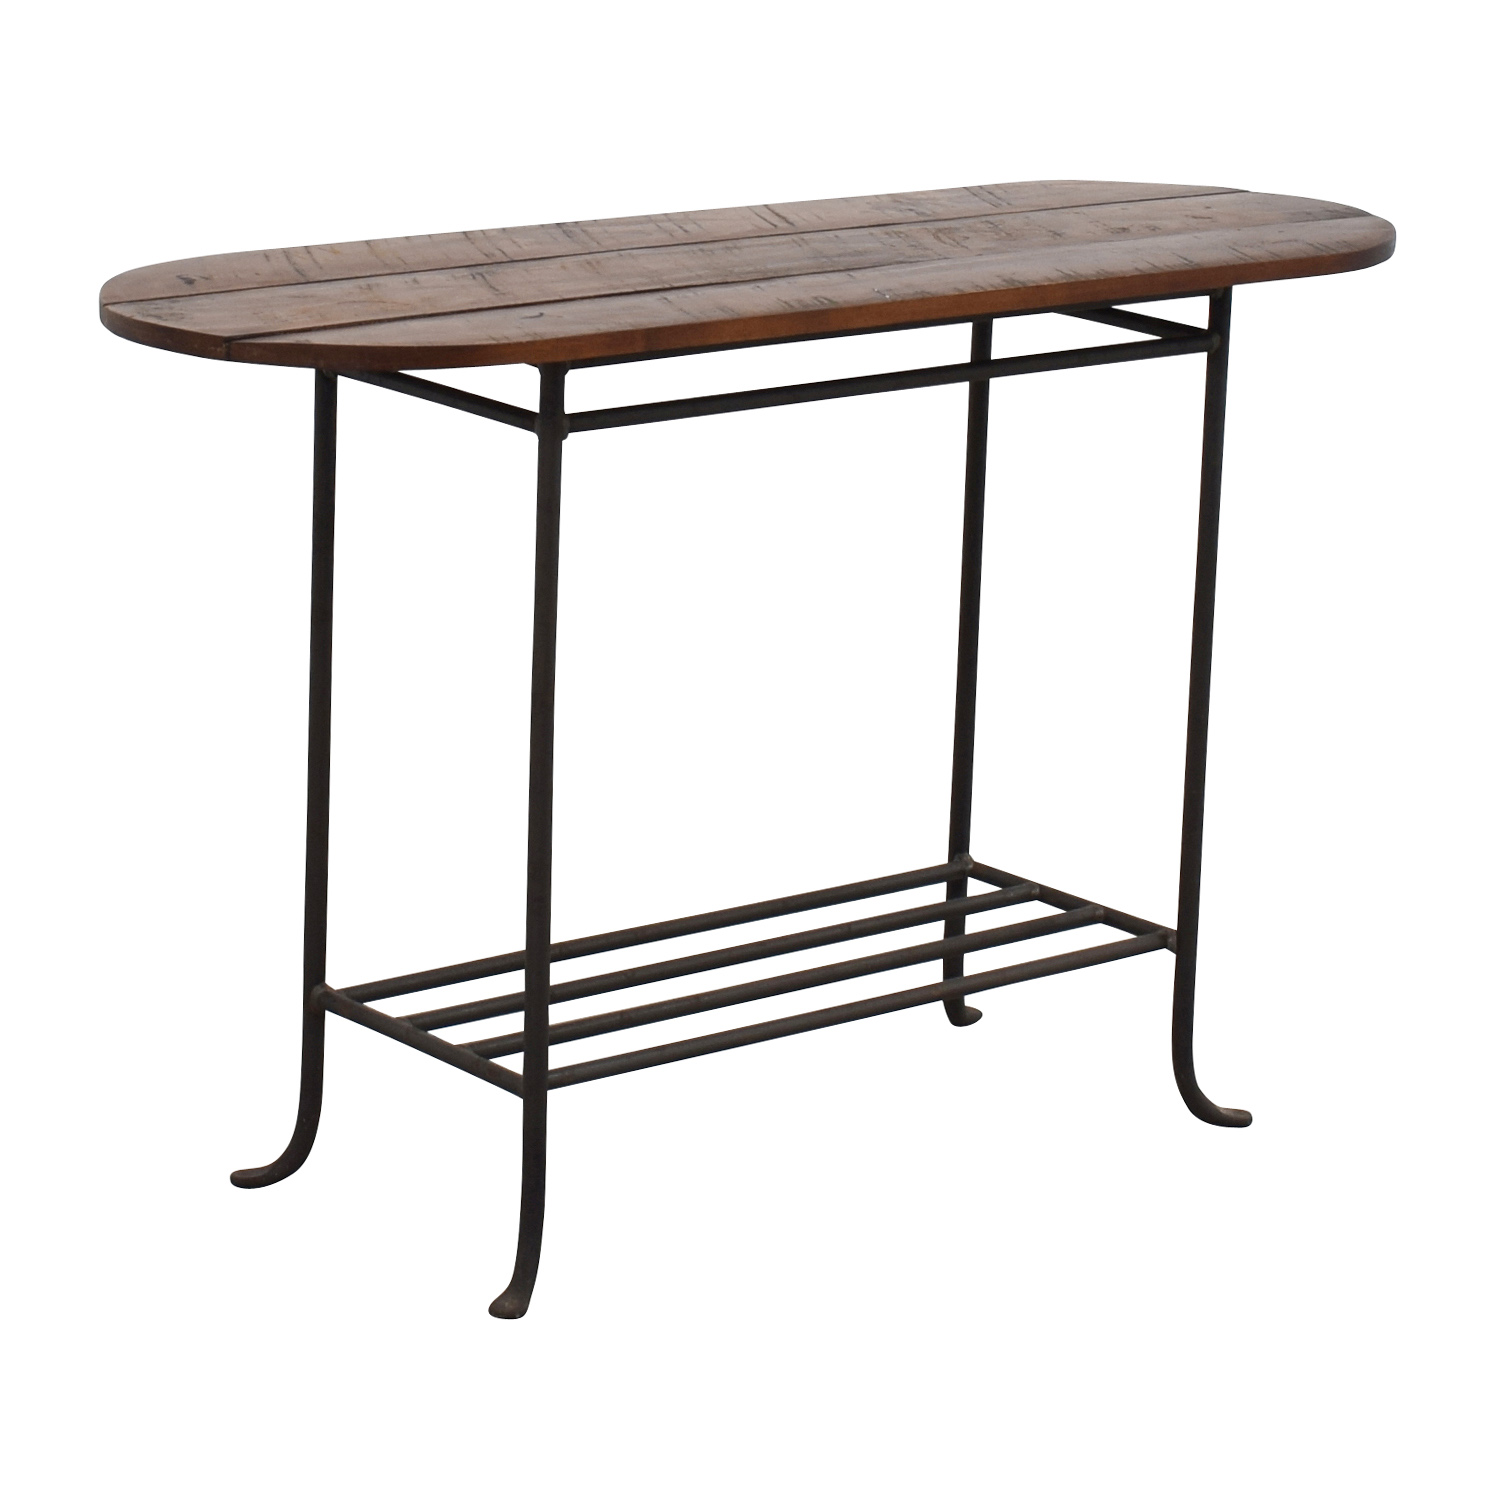 Charleston forge dining tables charleston forge legacy for Charleston forge furniture